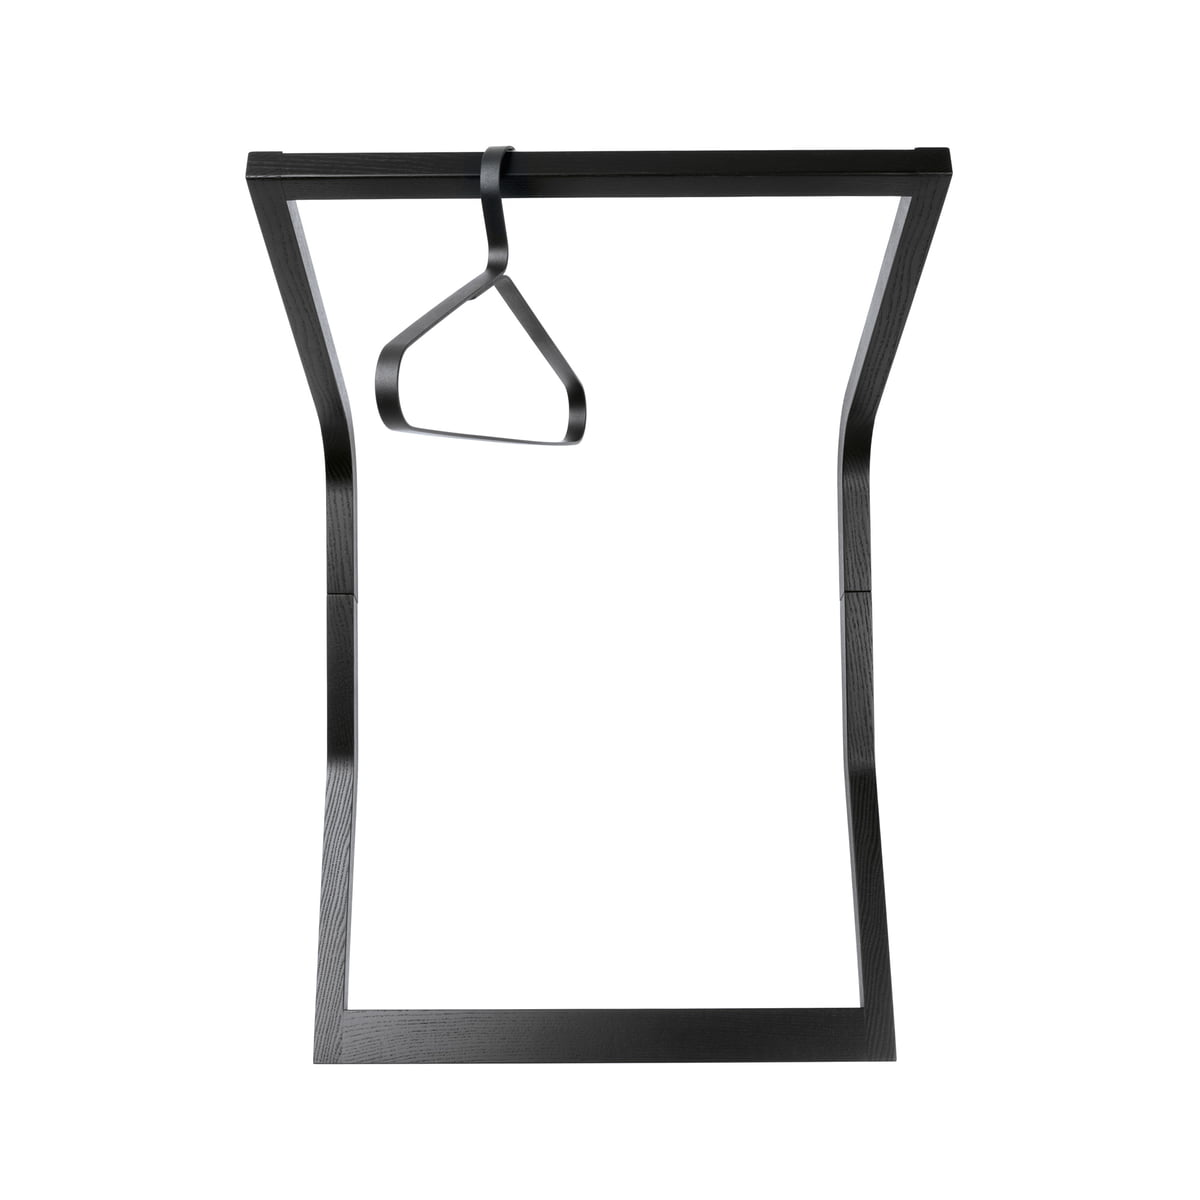 Sch nbuch sled wandgarderobe connox shop for Kleine wandgarderobe